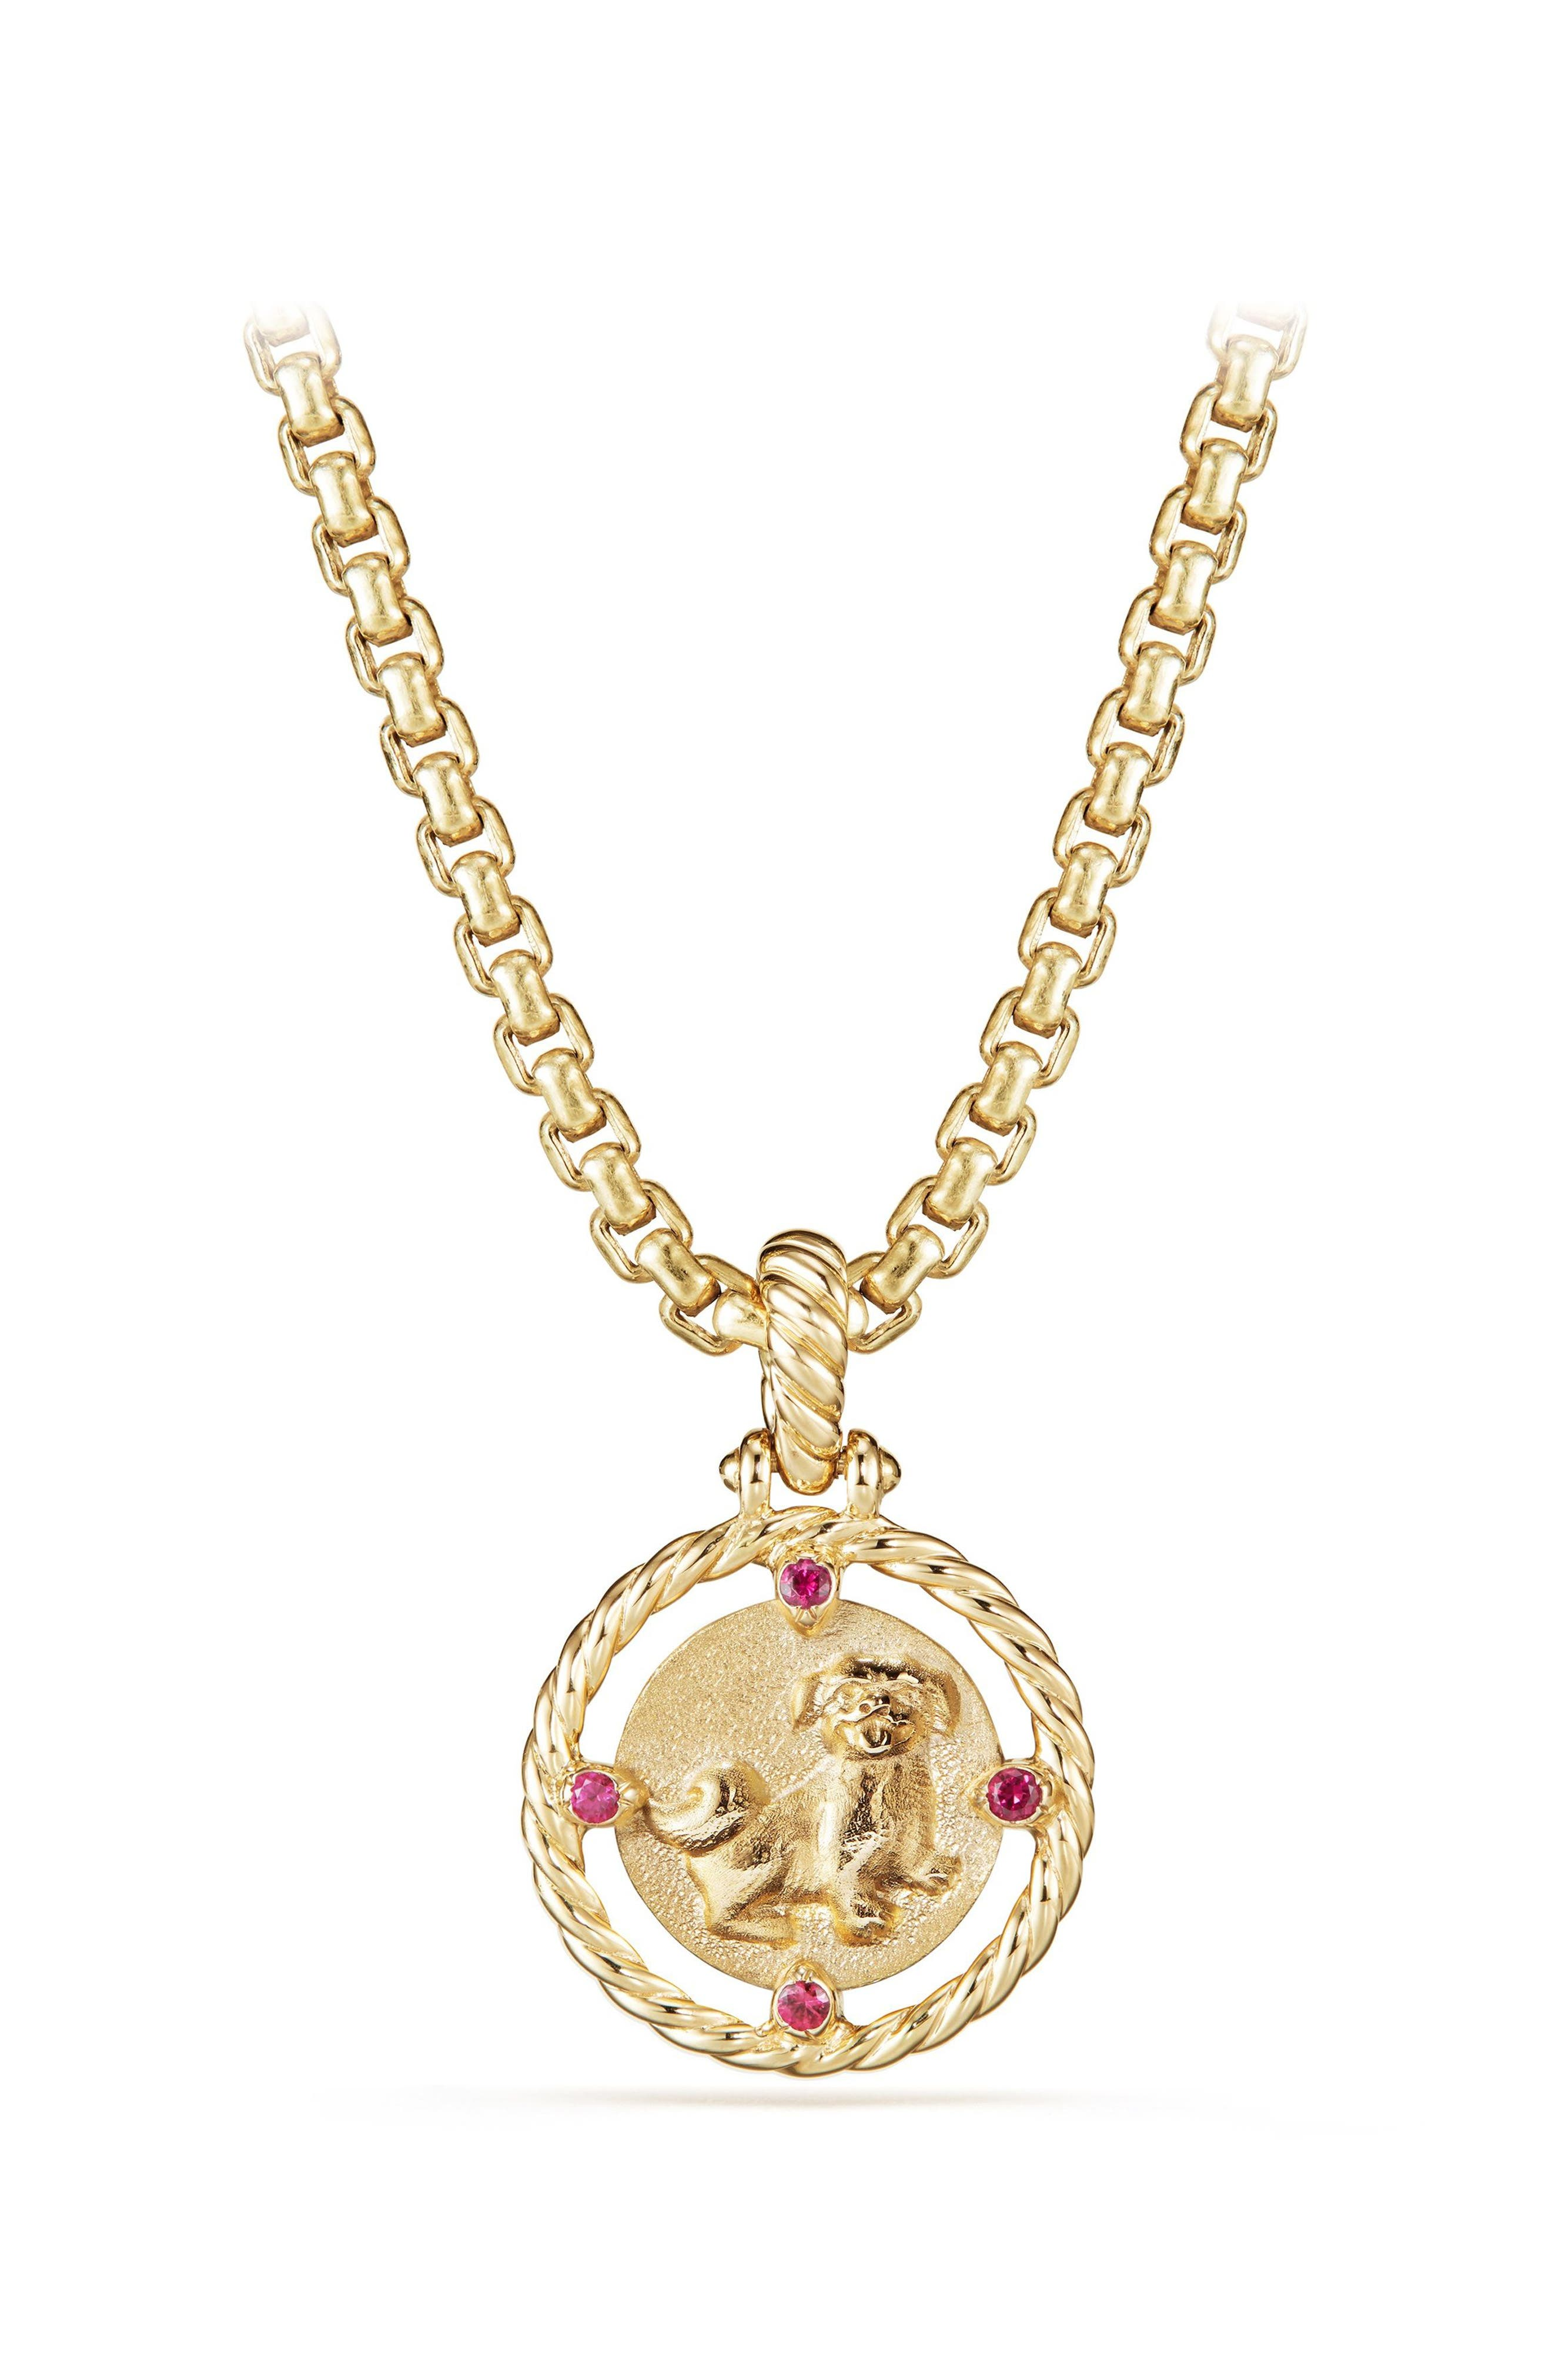 Lunar New Year Charm in 18K Gold with Rubies,                         Main,                         color, YELLOW GOLD/ RUBY